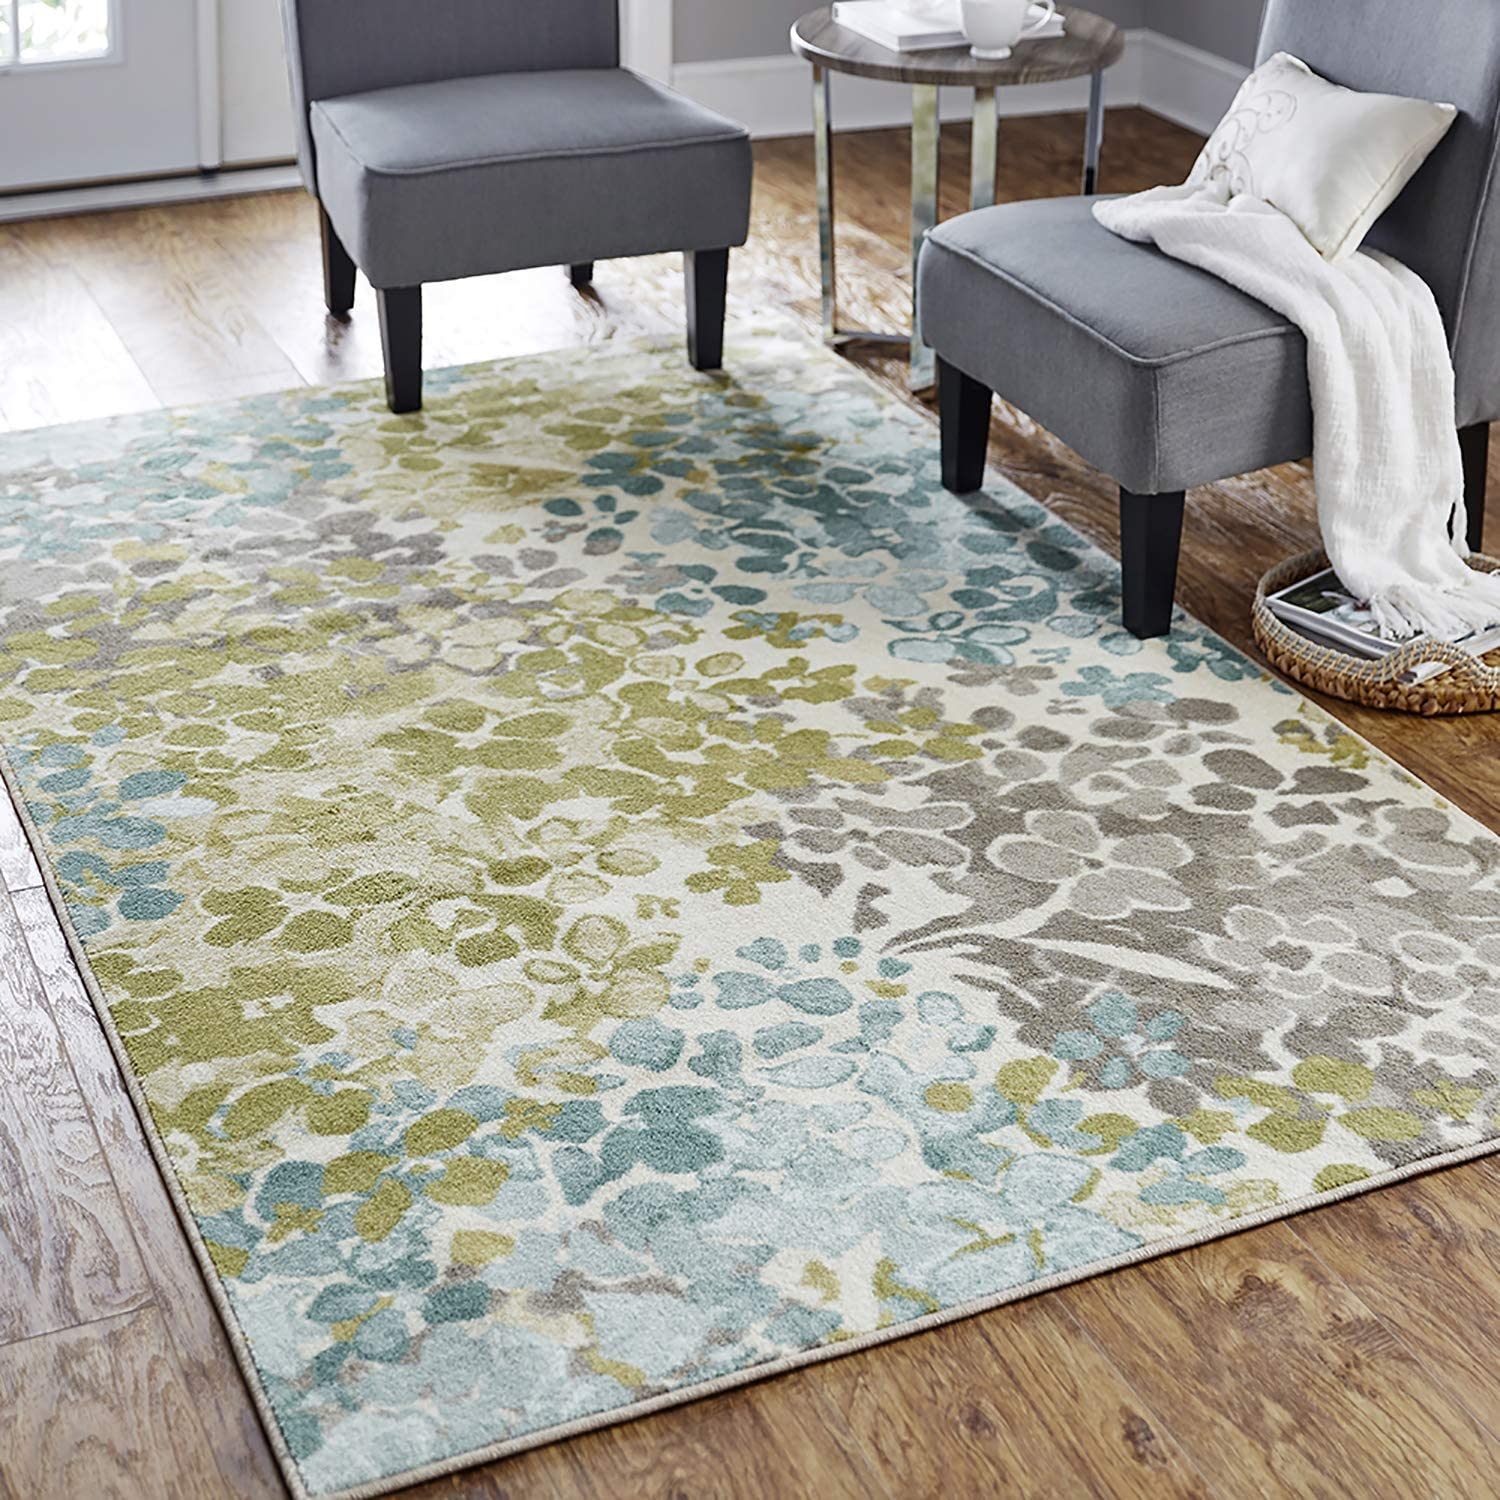 Mohawk Home Aurora Radiance Aqua Abstract Floral Accent Area Rug, 2'6